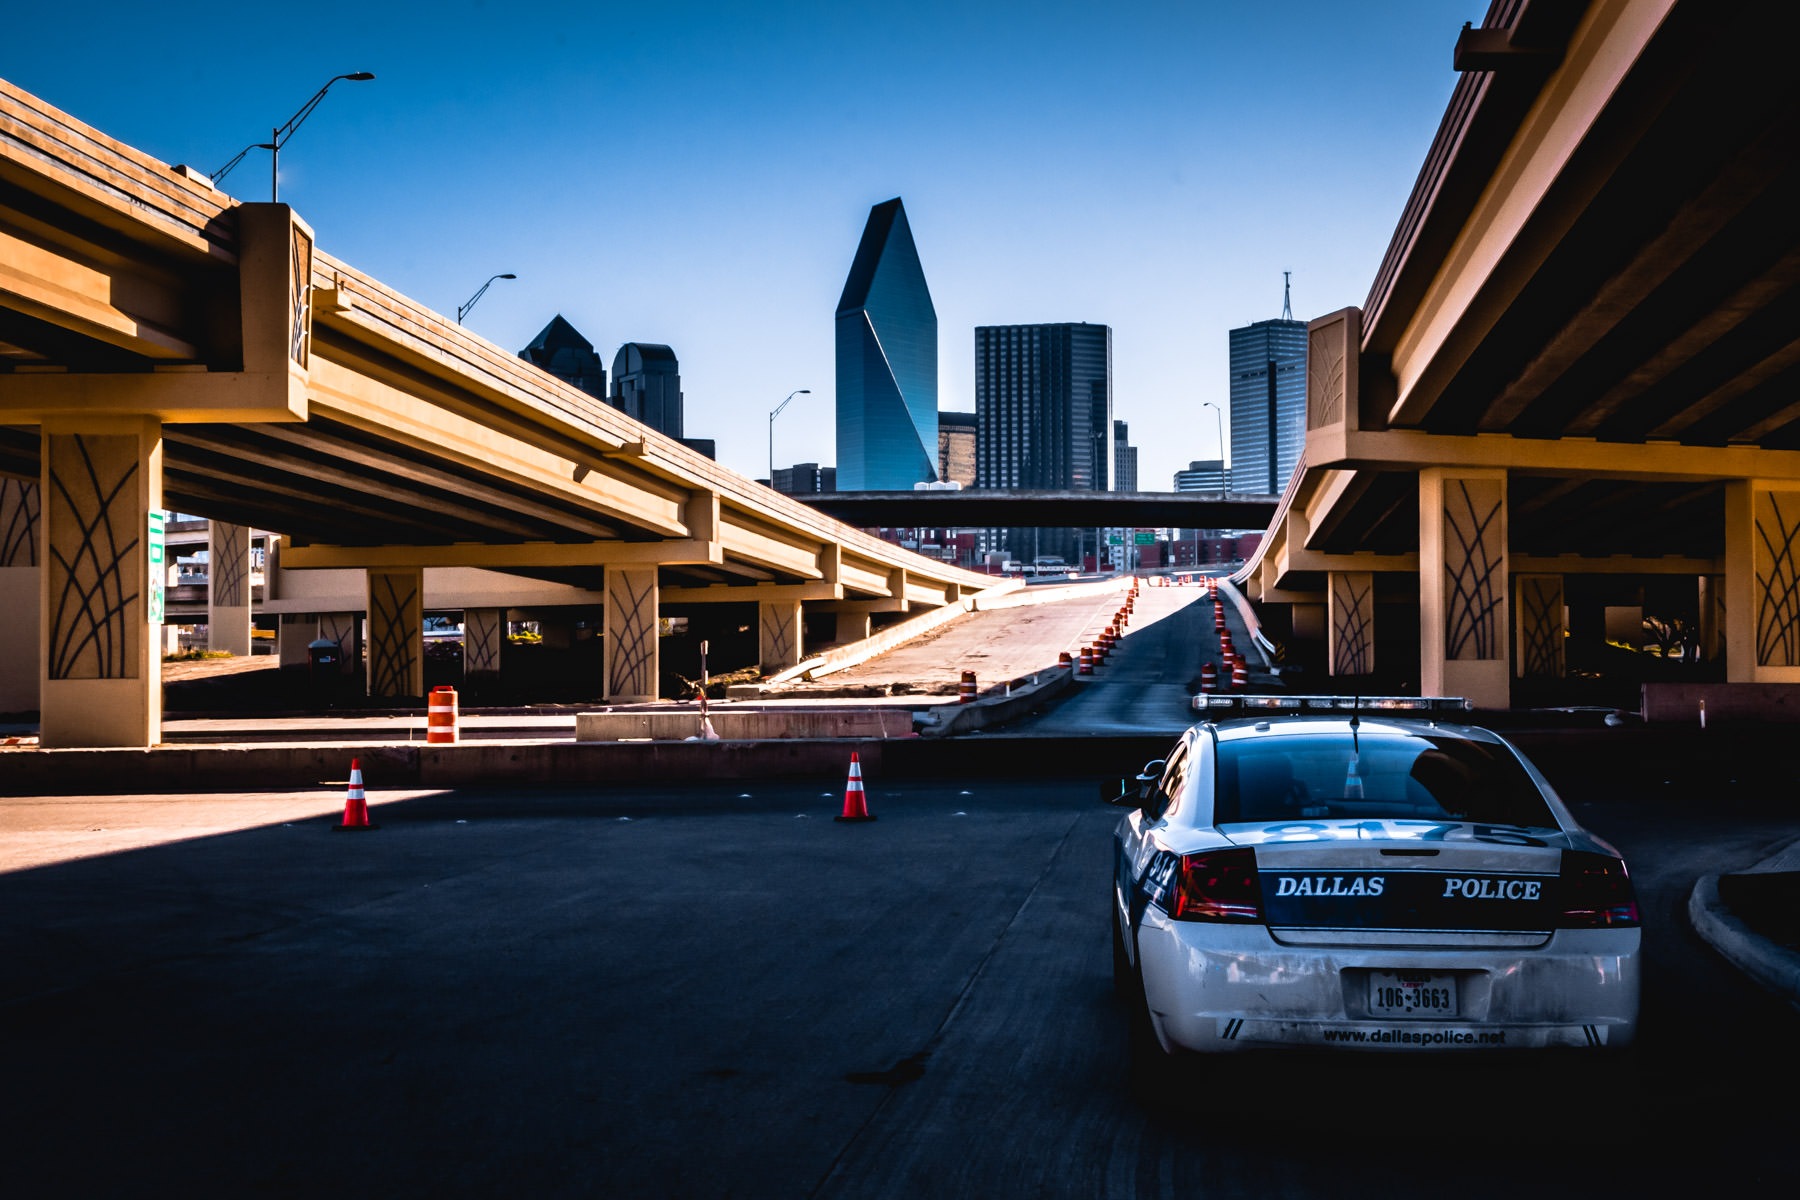 A Dallas police cruiser parked between the approach ramps to the Santiago Calatrava-designed Margaret Hunt Hill Bridge during its 2012 dedication ceremony.